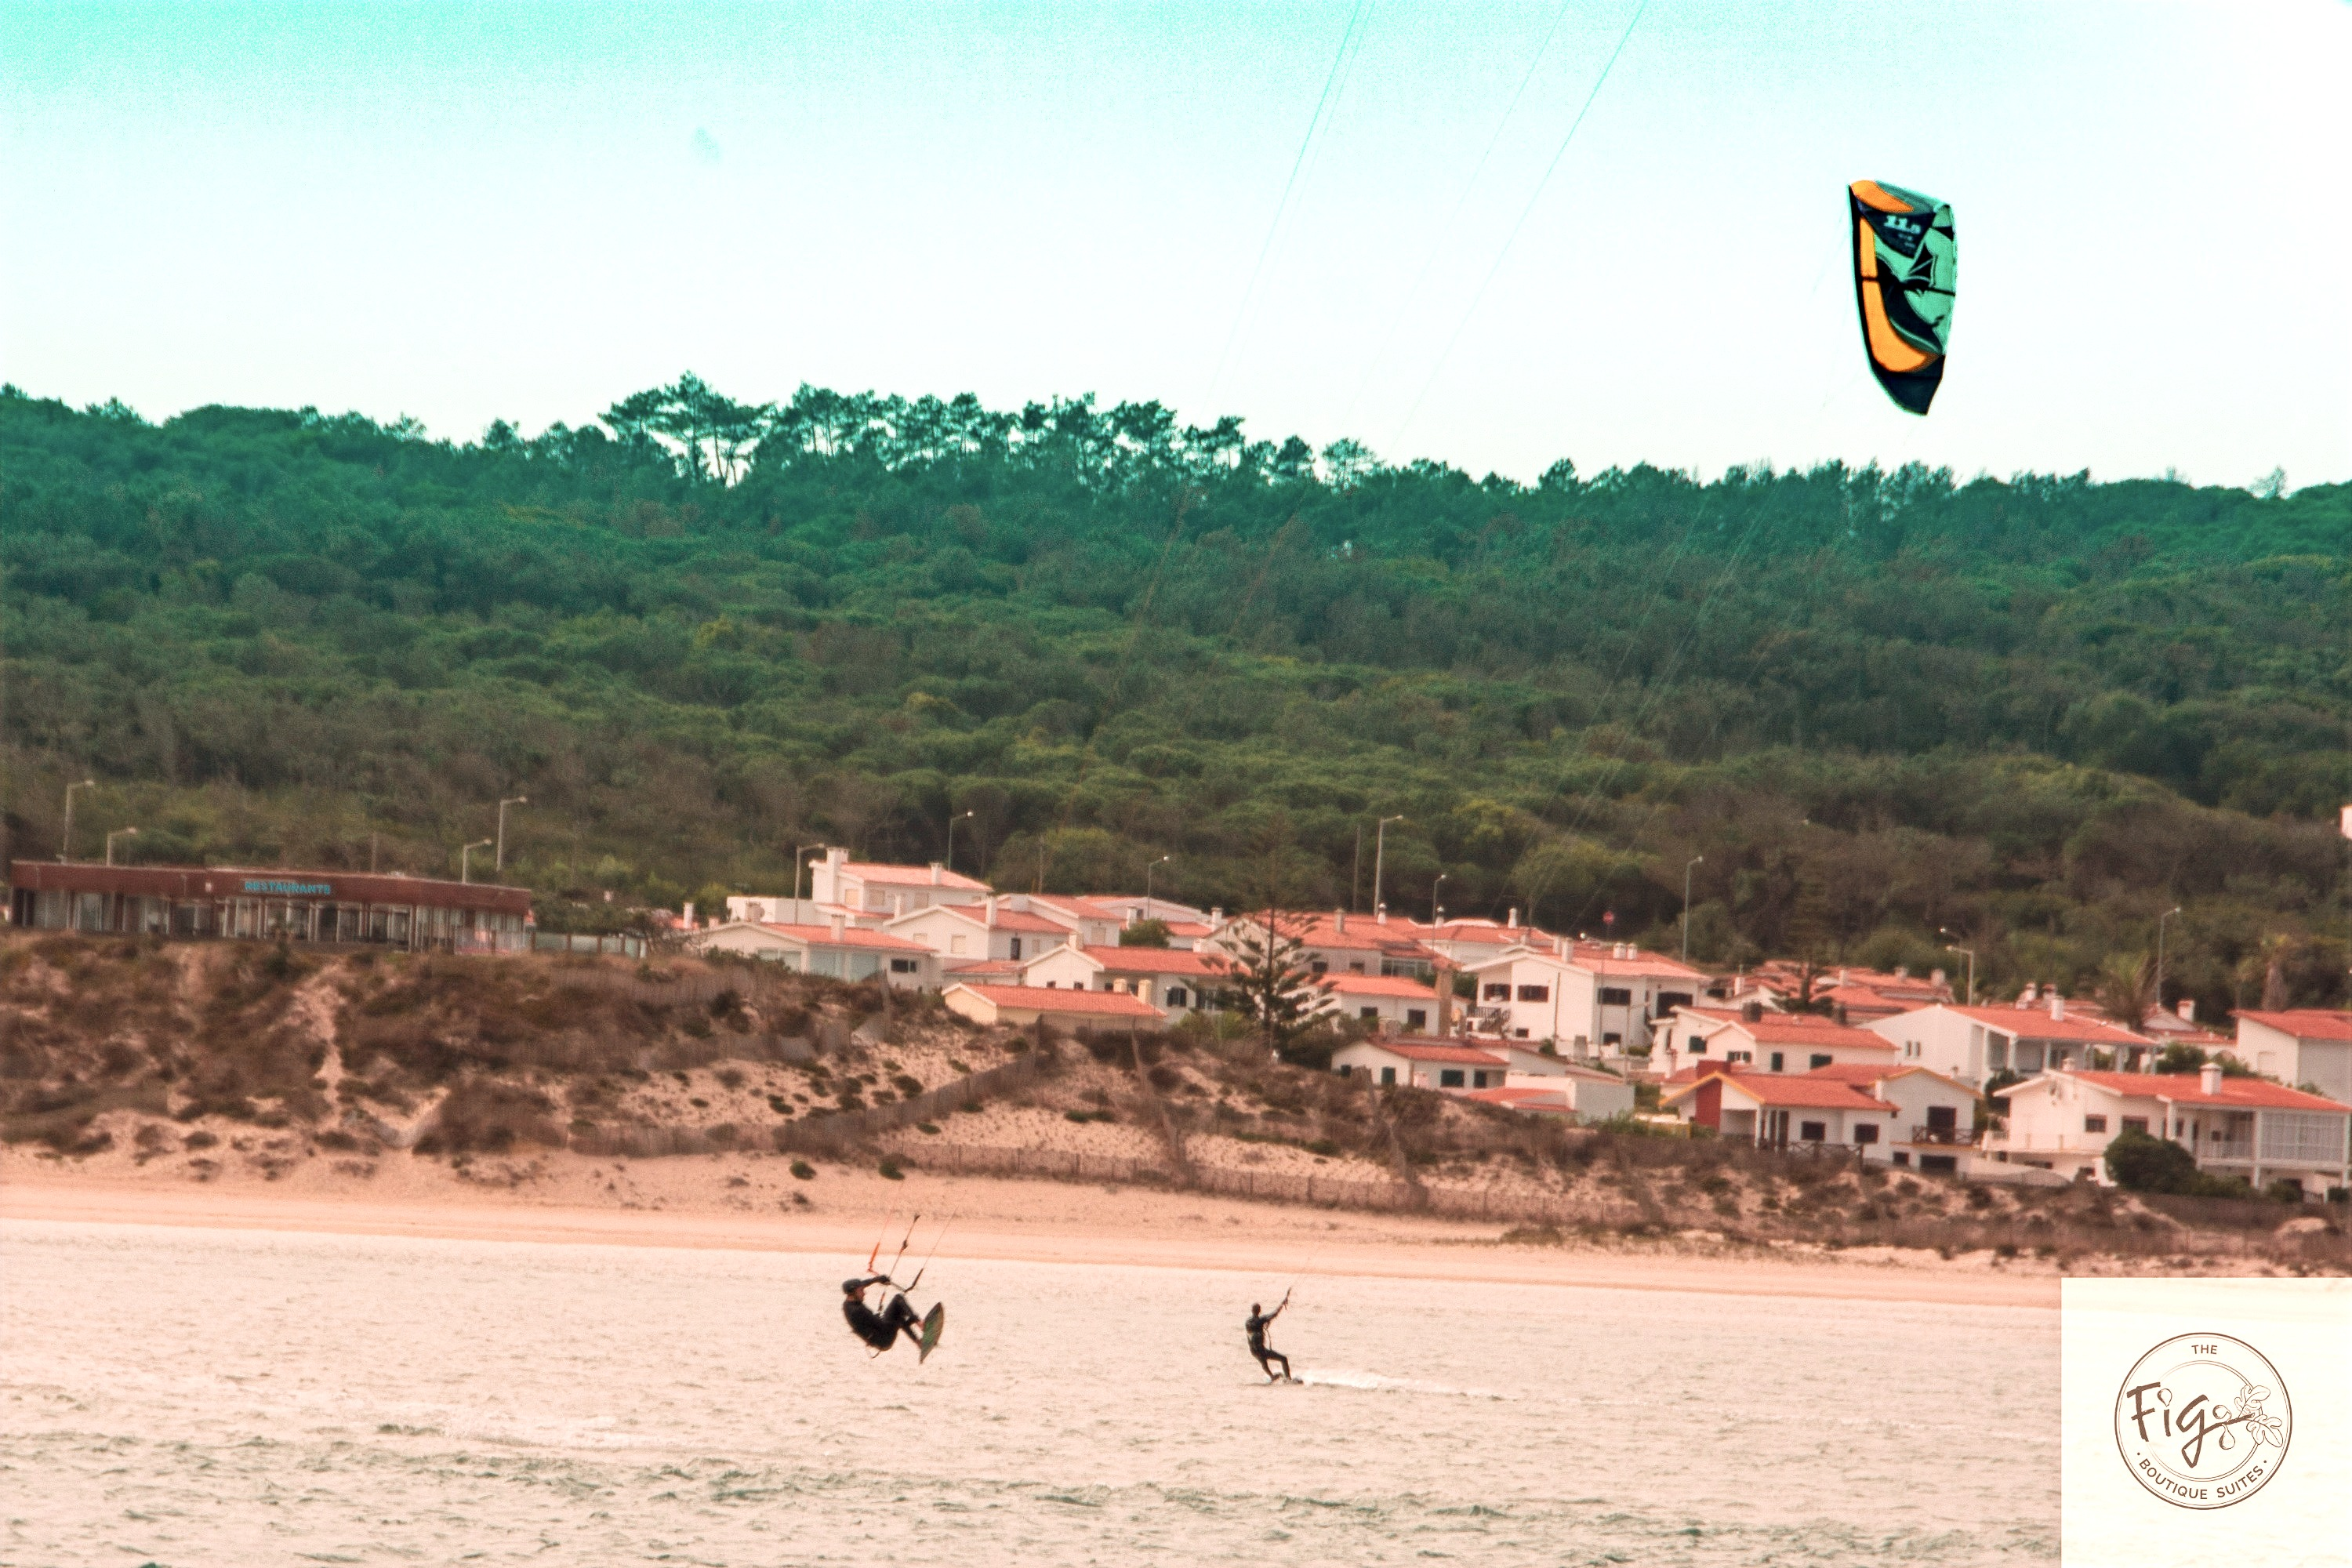 Kite surf at Lagoa de Obidos